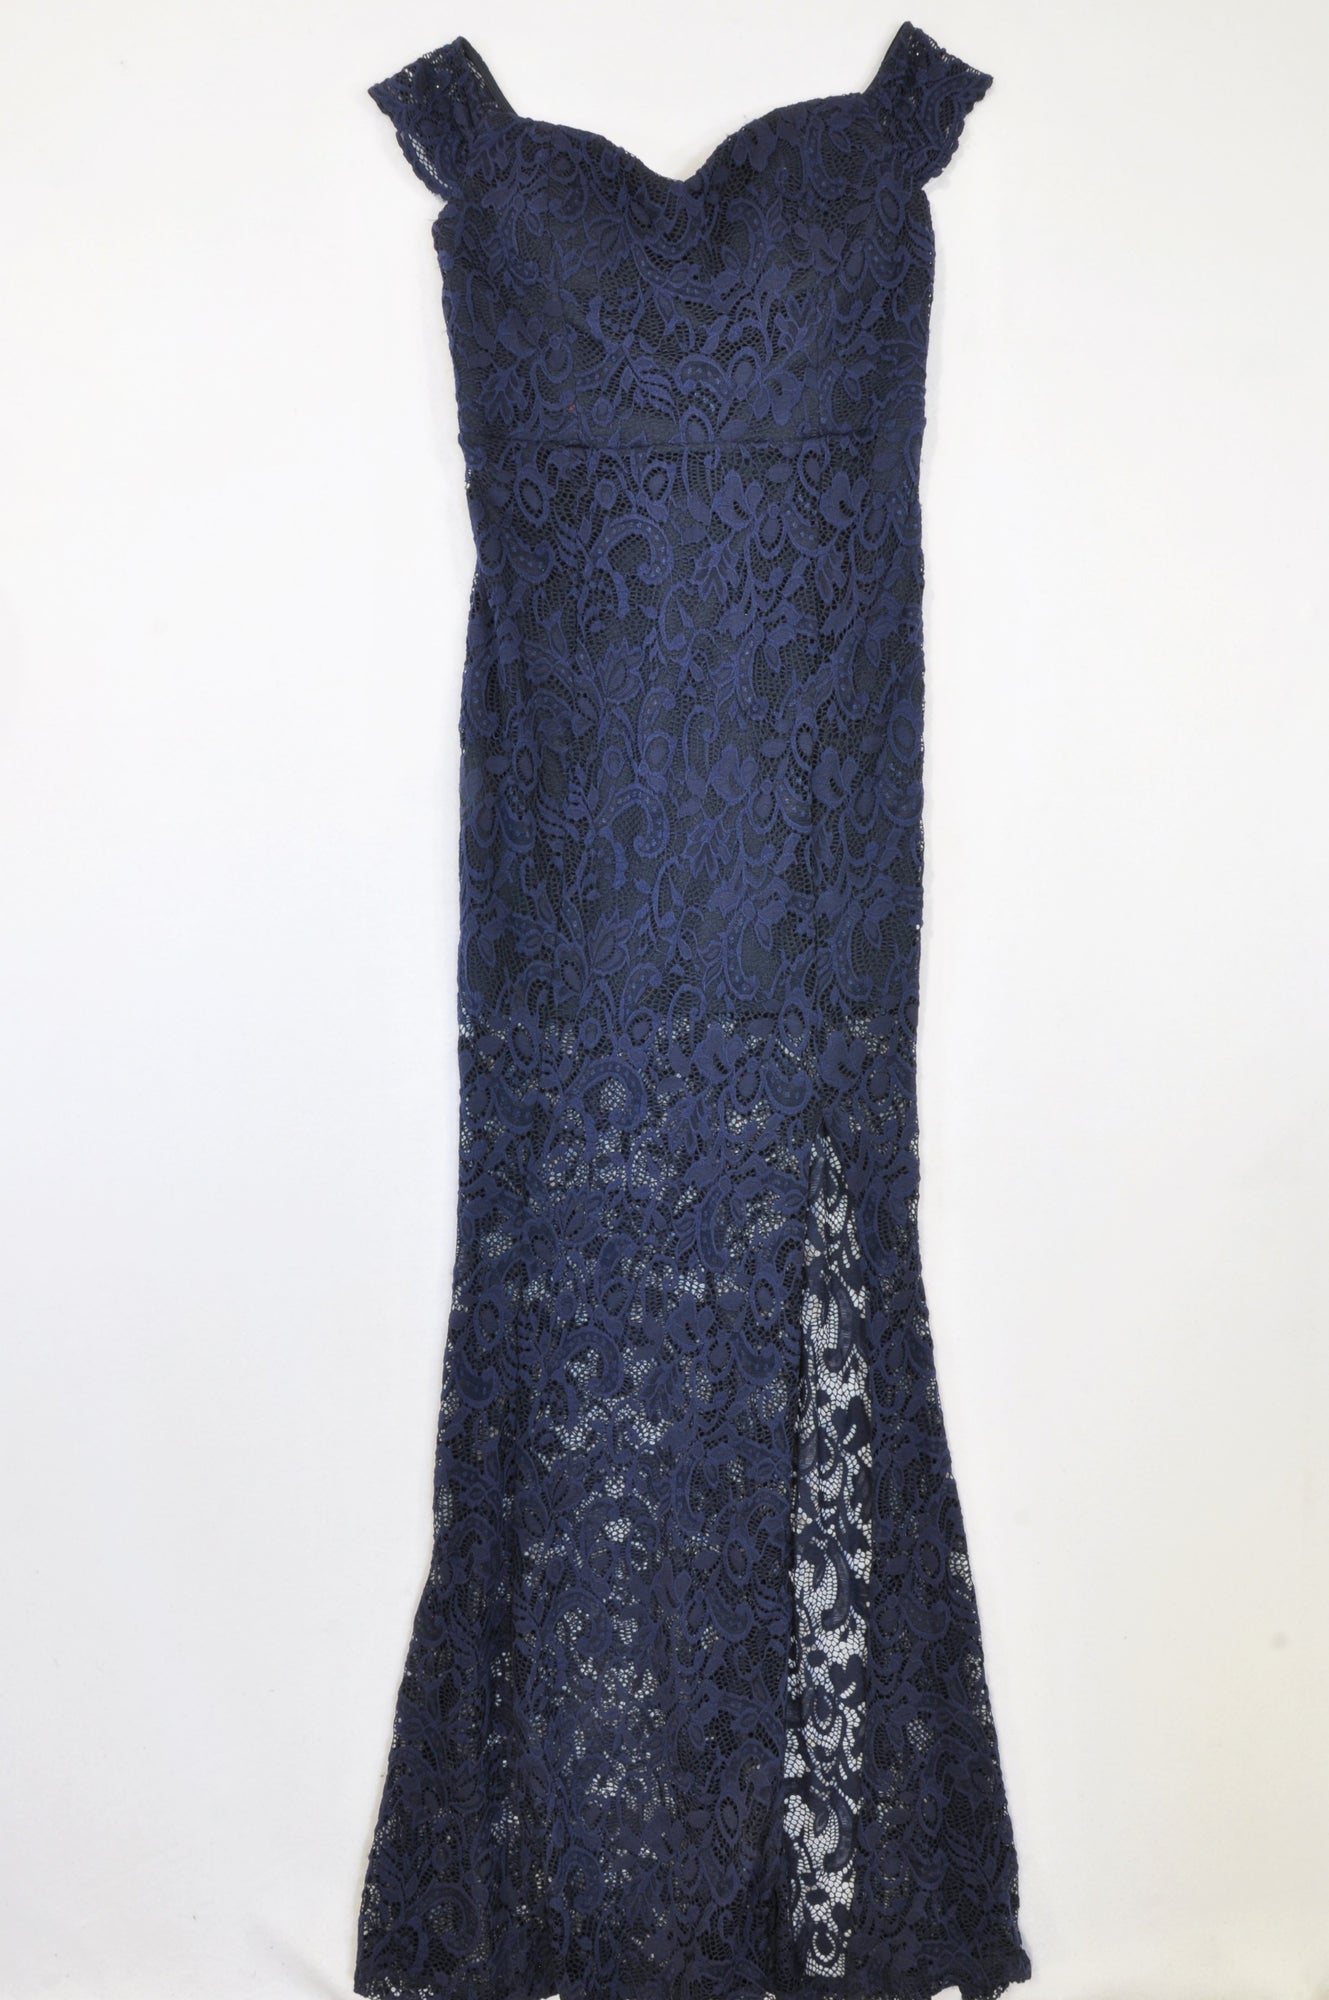 YDE Navy Lace Overlay Slit Dress Women Size 6